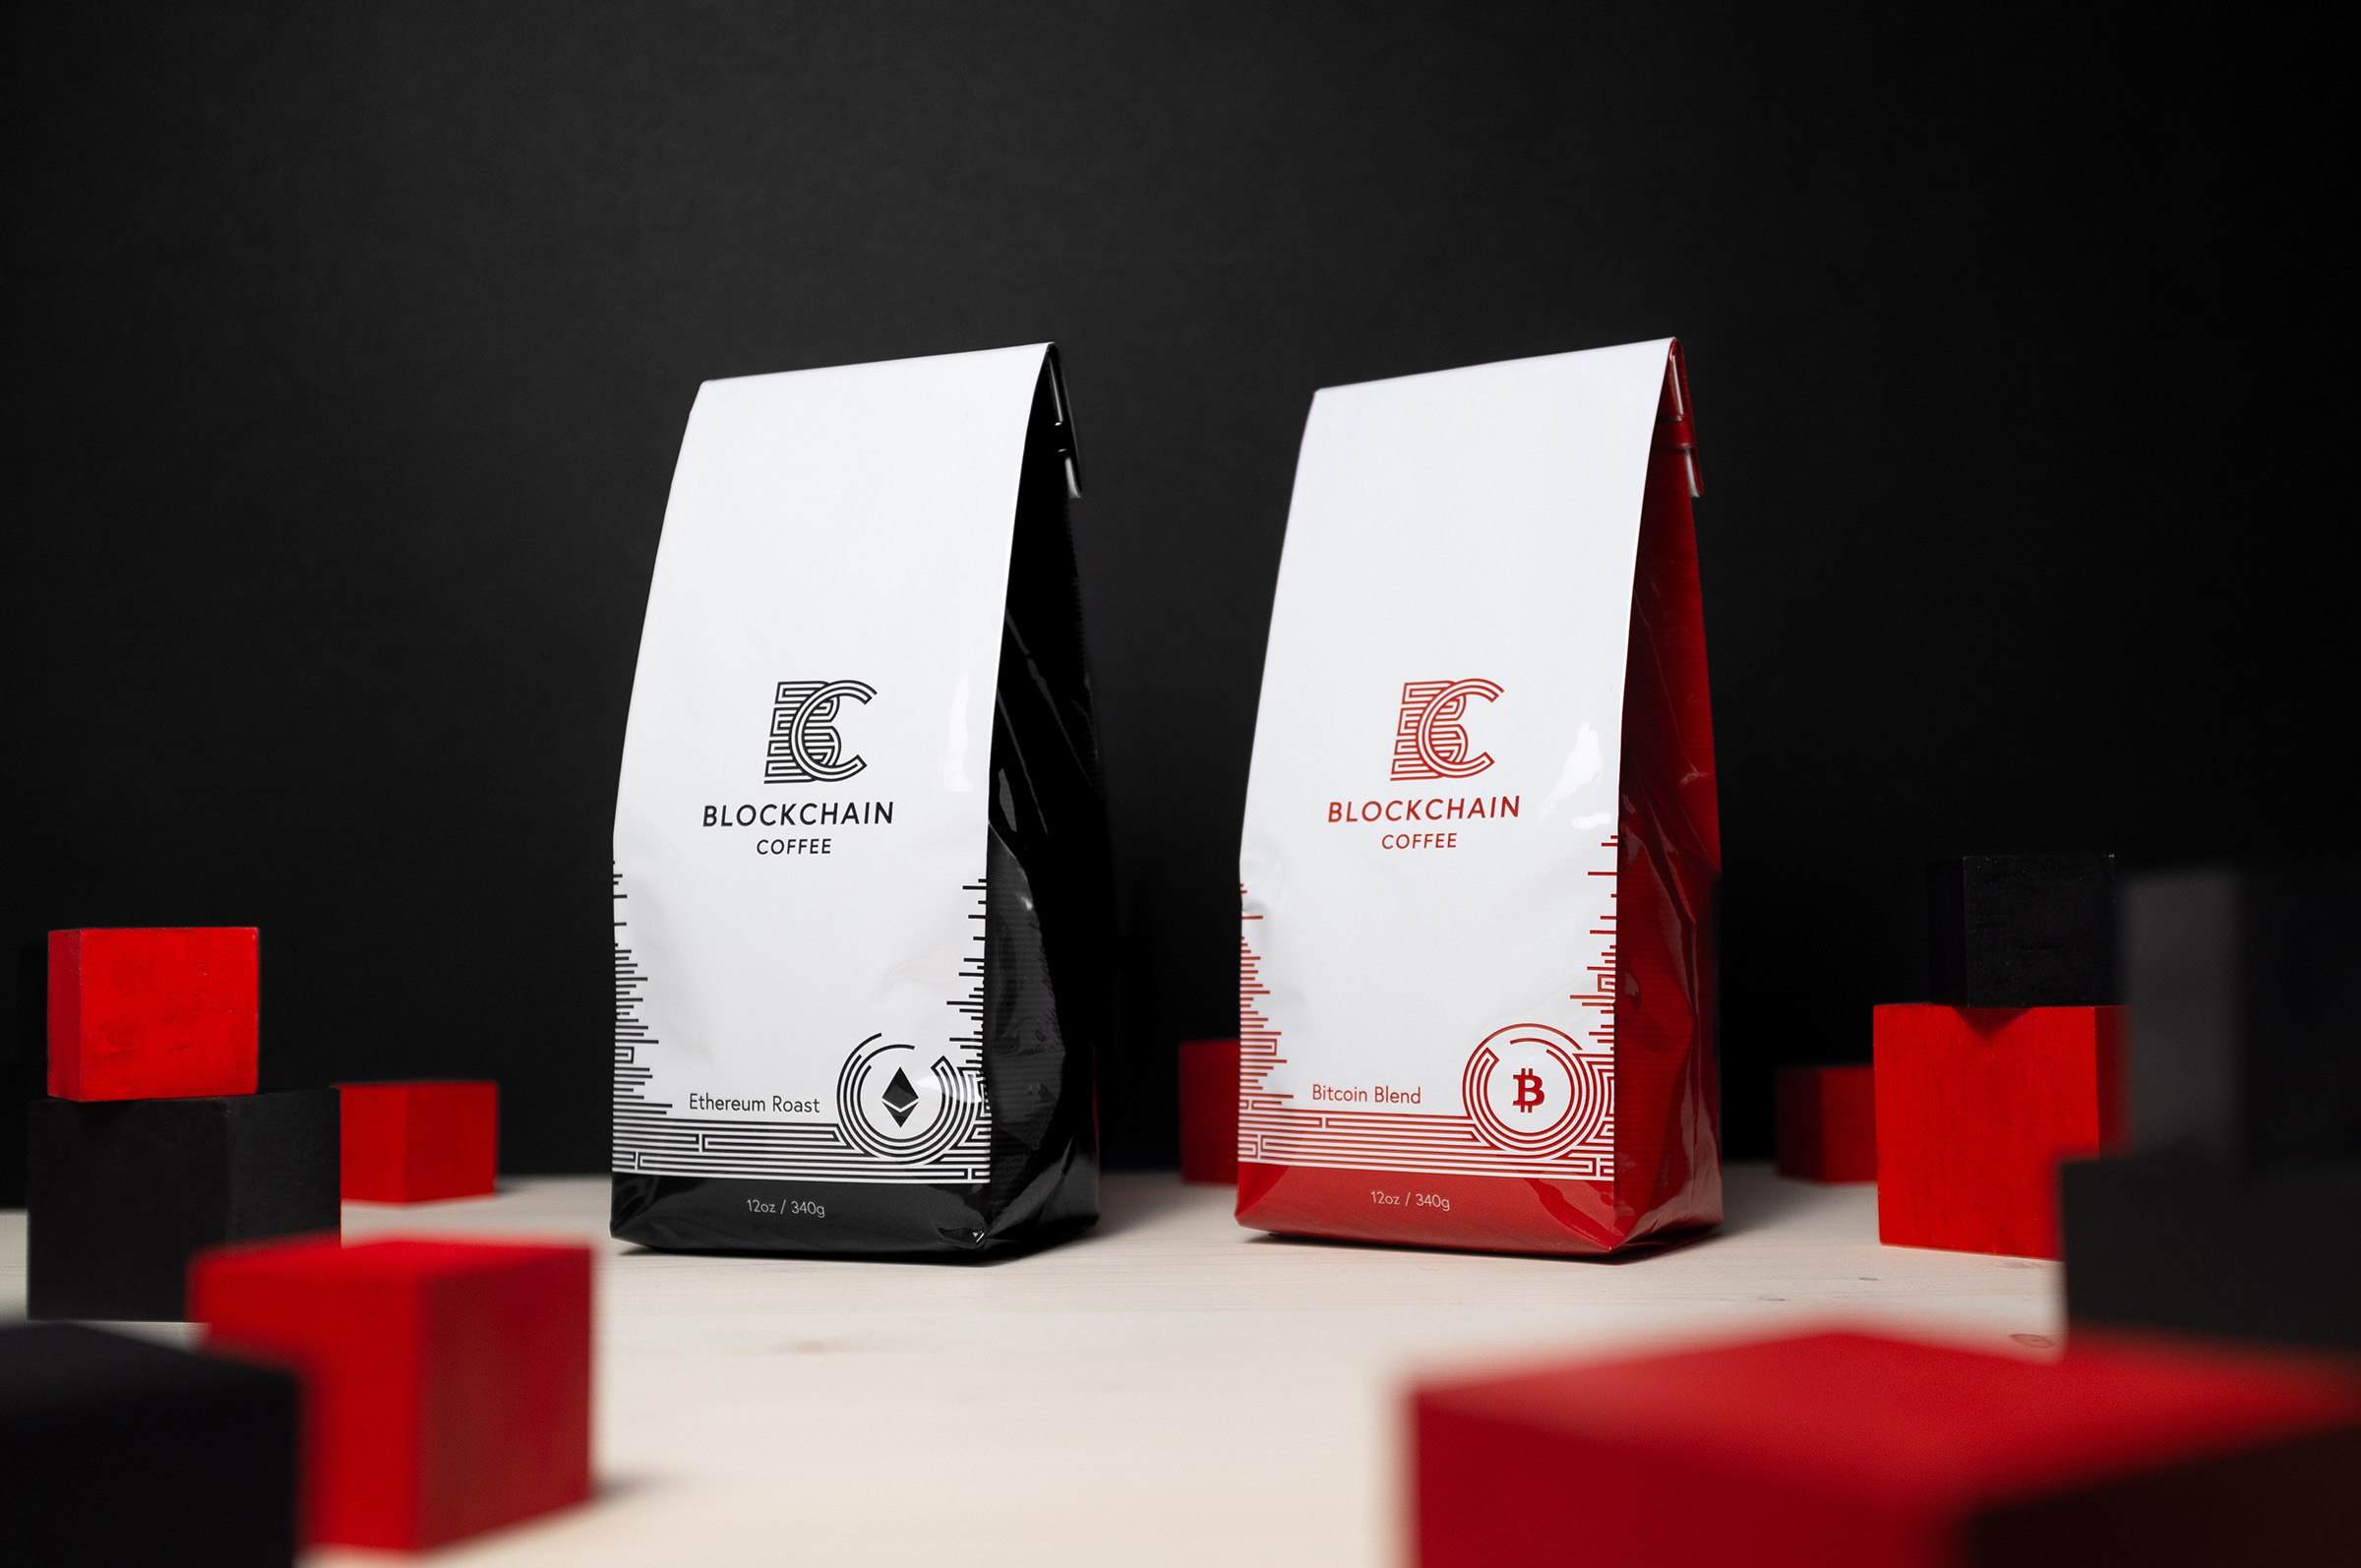 Consumer Brand Identity and Packaging Design for an Upcoming Online Coffee Store